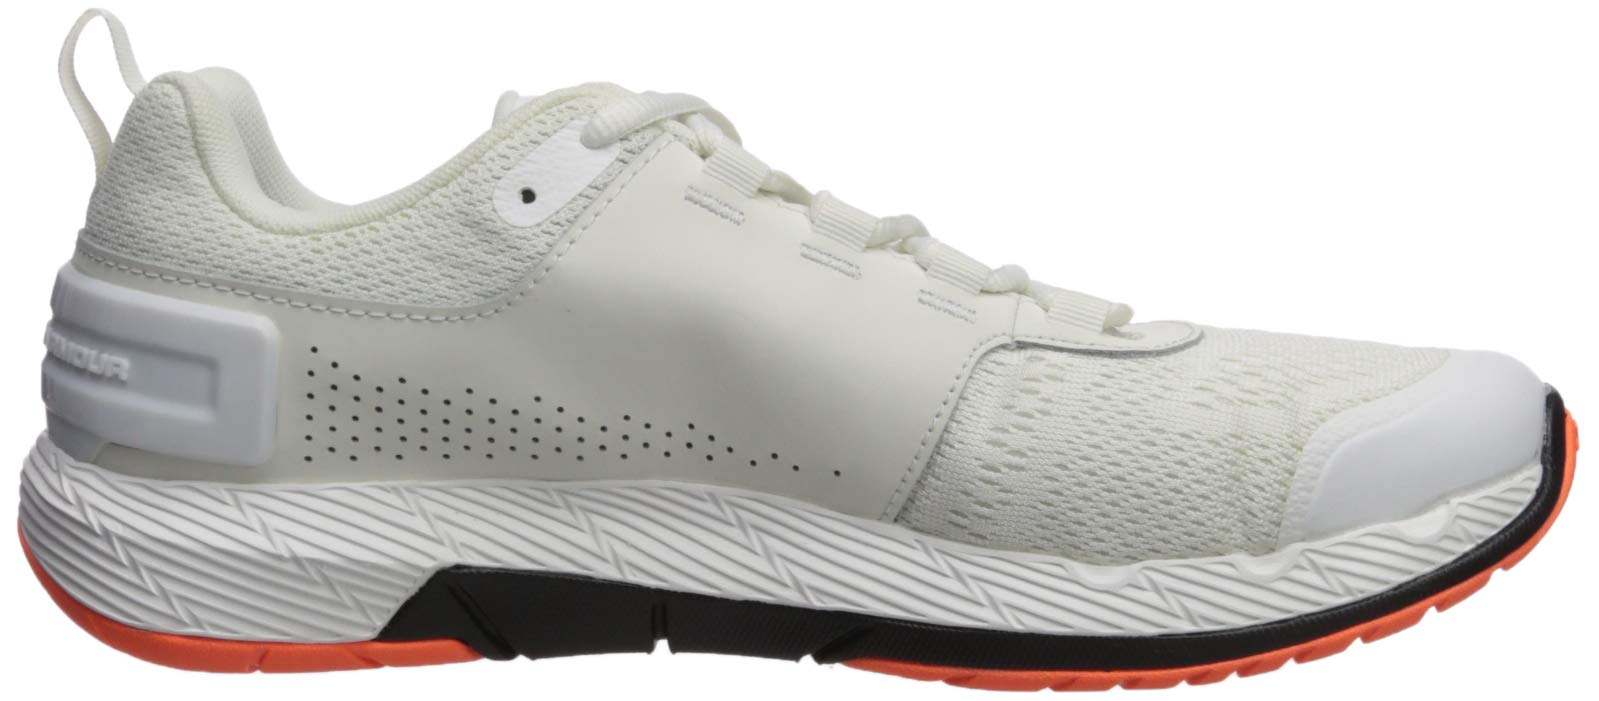 Under Armour Men's Commit TR EX Sneaker, Onyx White (108)/Black, 7 M US by Under Armour (Image #6)